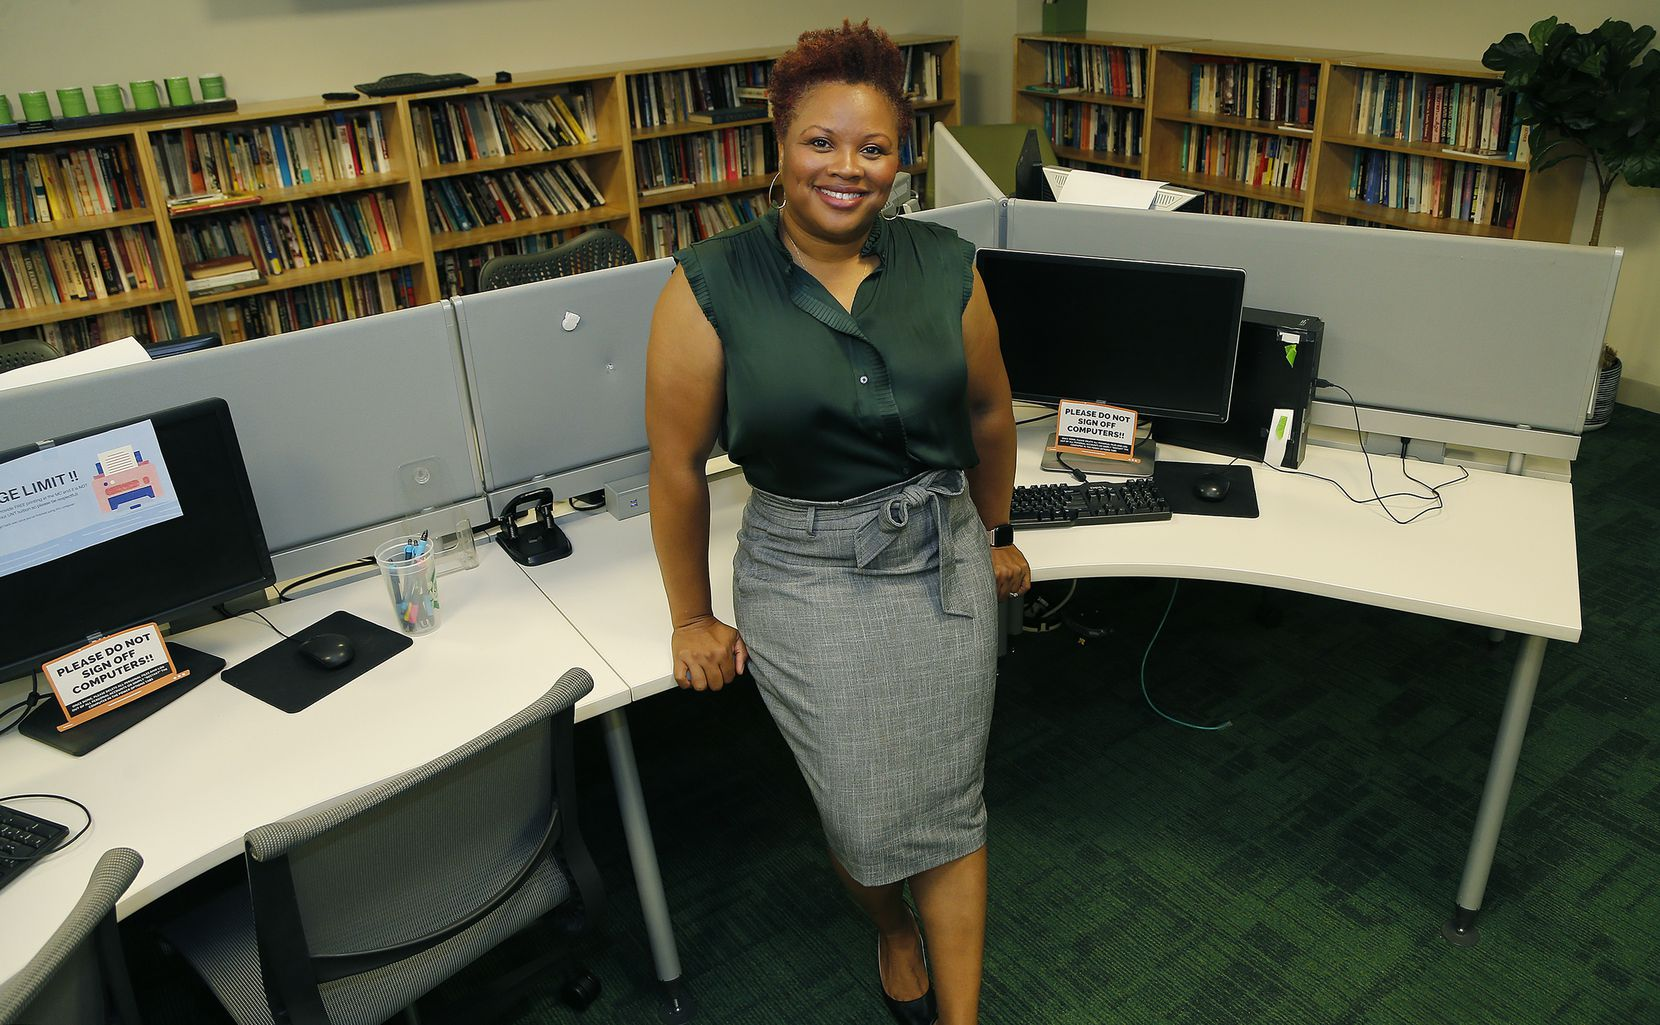 Chandra Carey, academic associate dean, inside the student union building on the UNT campus on Friday, July 2, 2021.